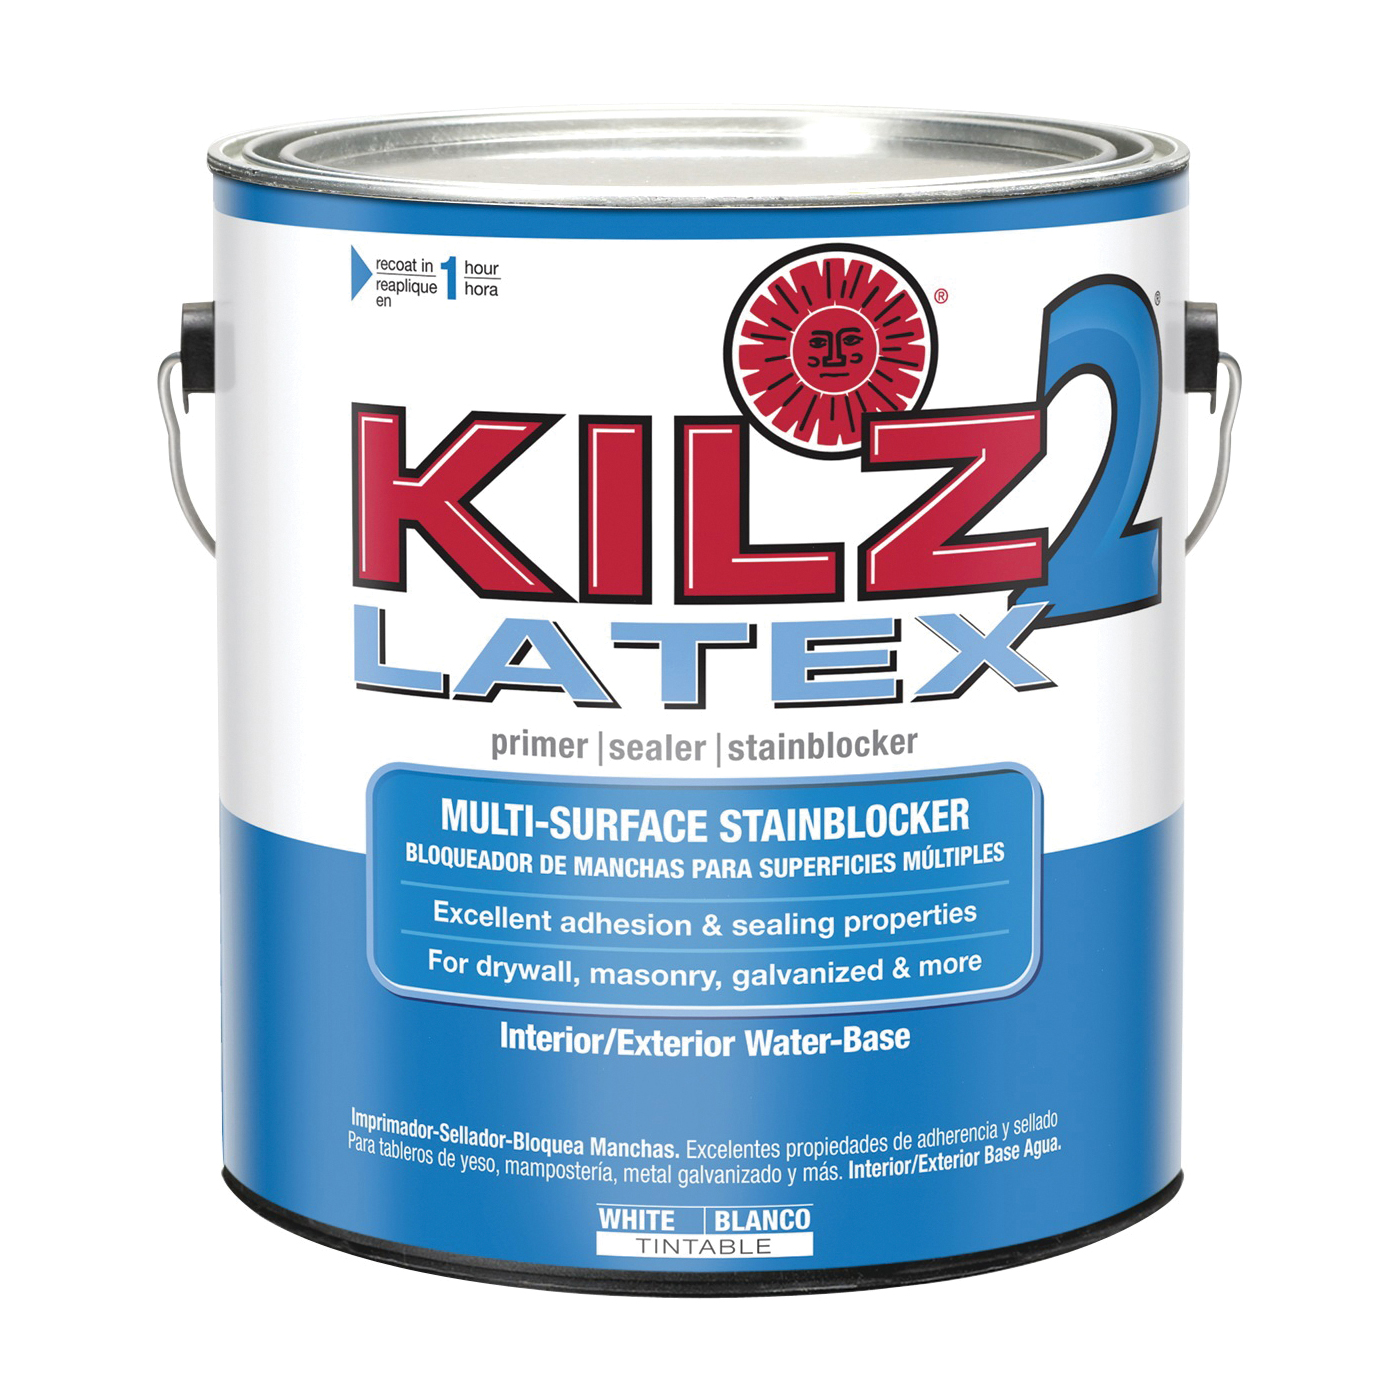 Picture of Kilz 20041 Exterior Primer, White, 1 gal, Can